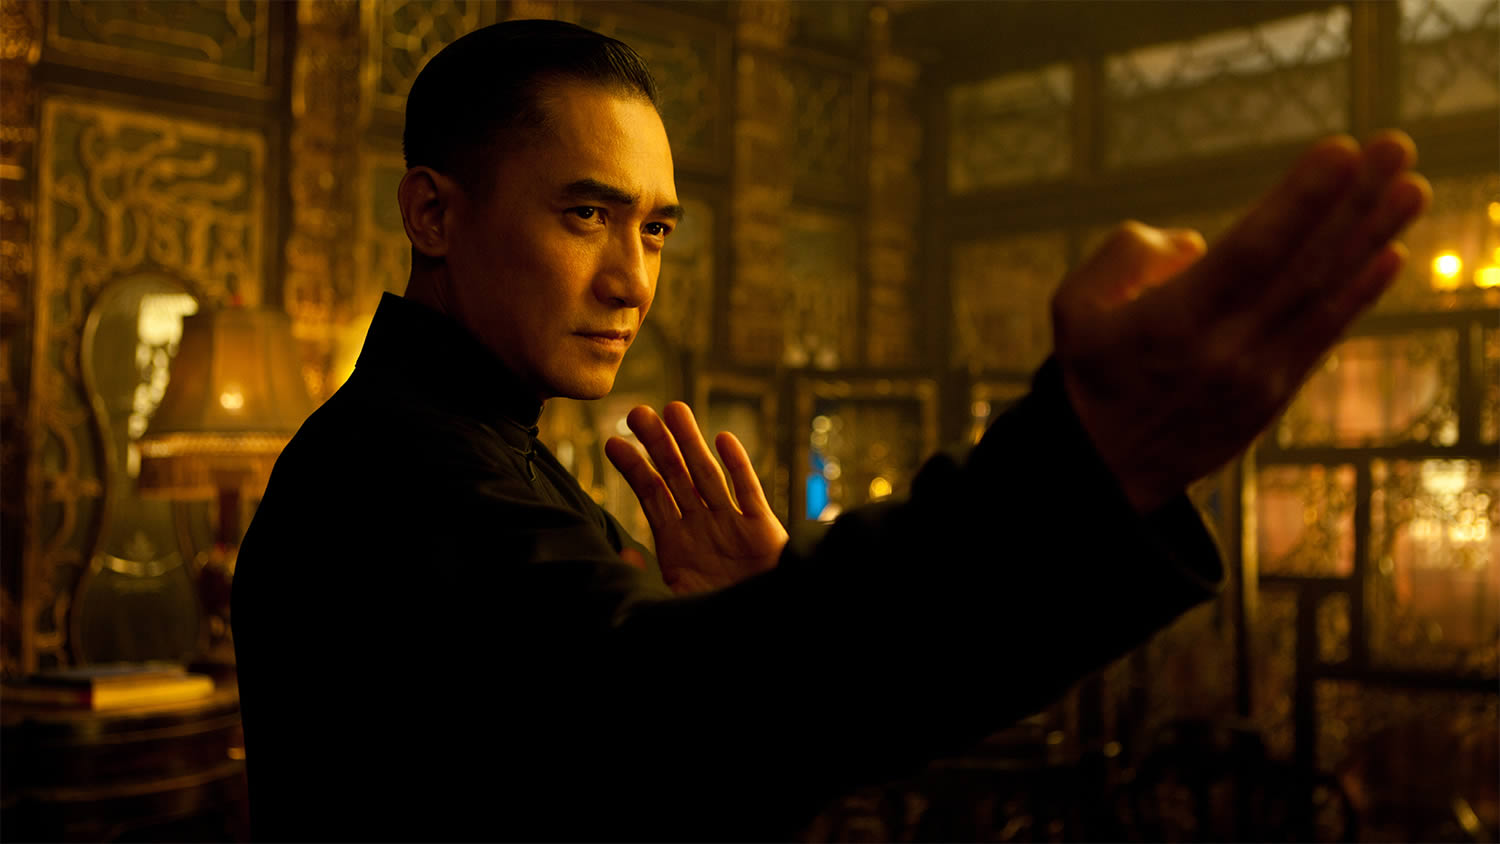 the grandmaster, fire warm scene with man ready to fight